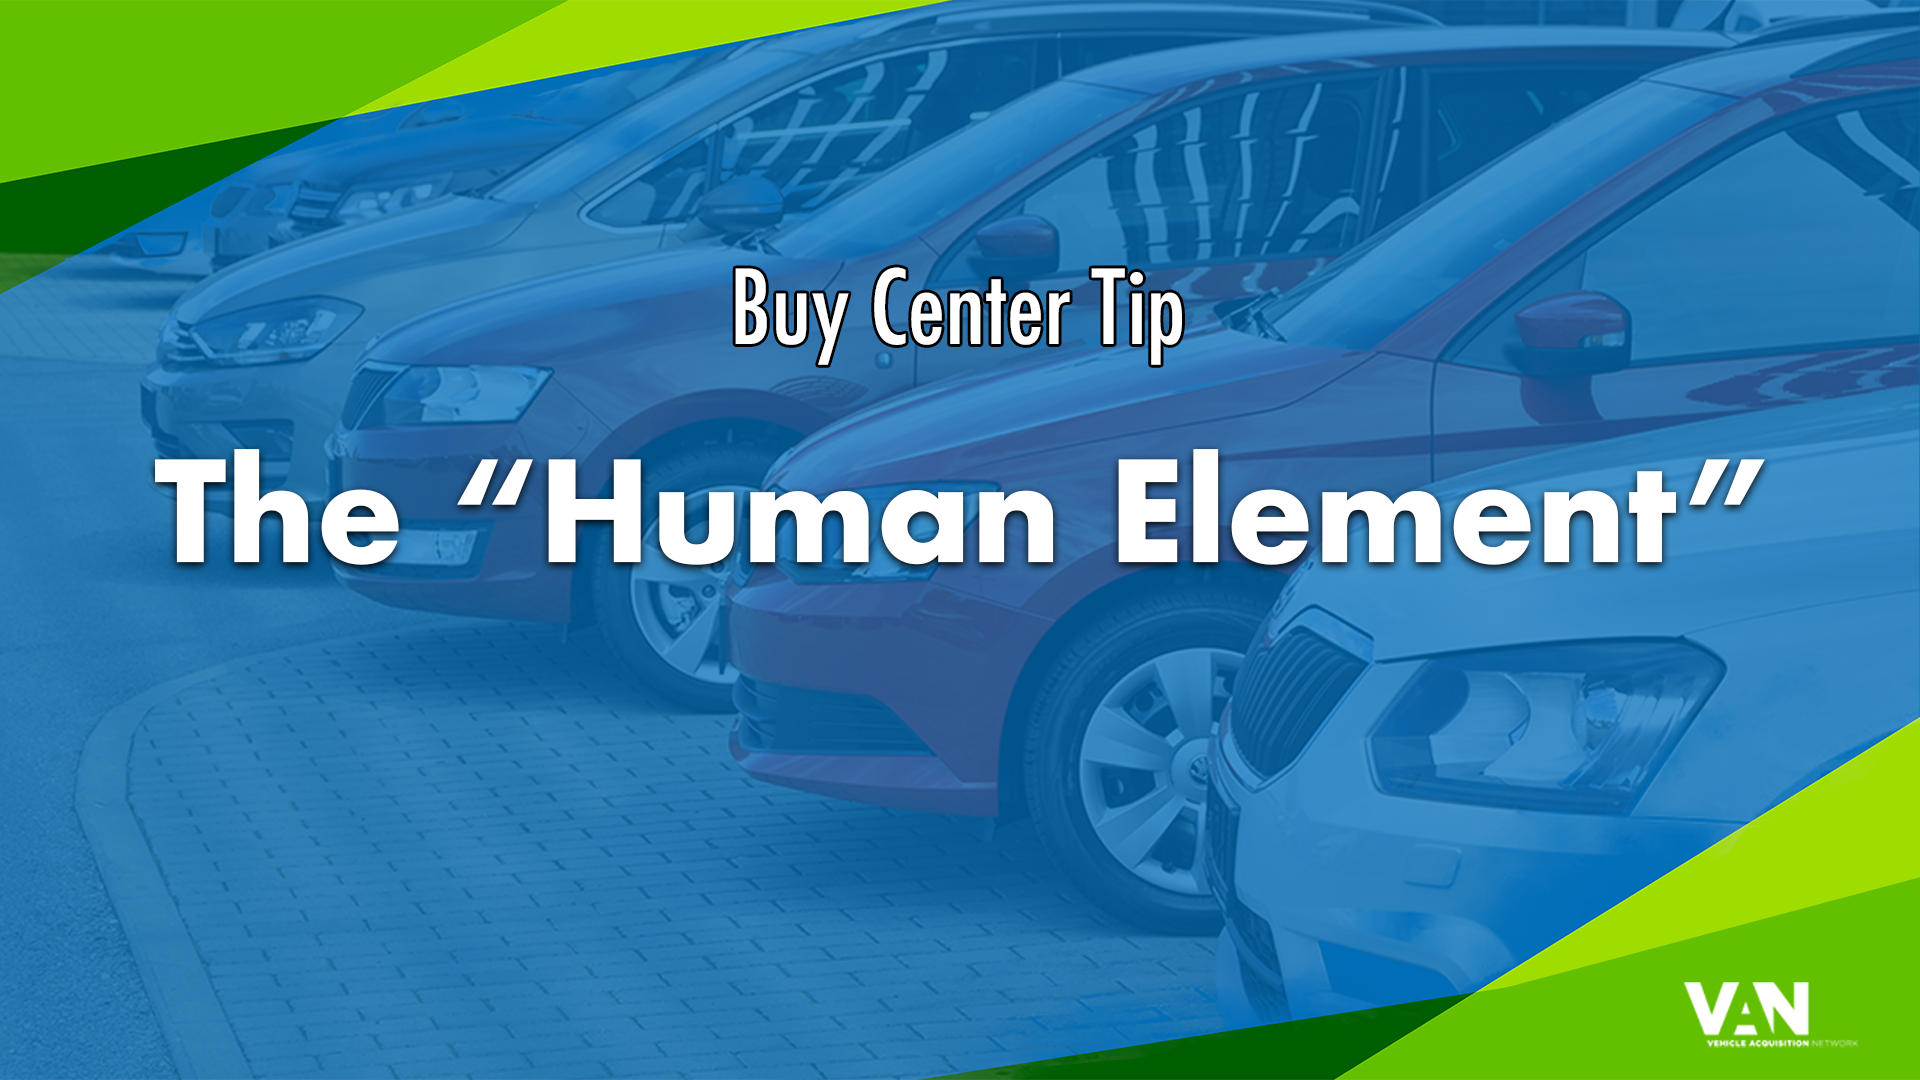 Buy Center Tip - The Human Element